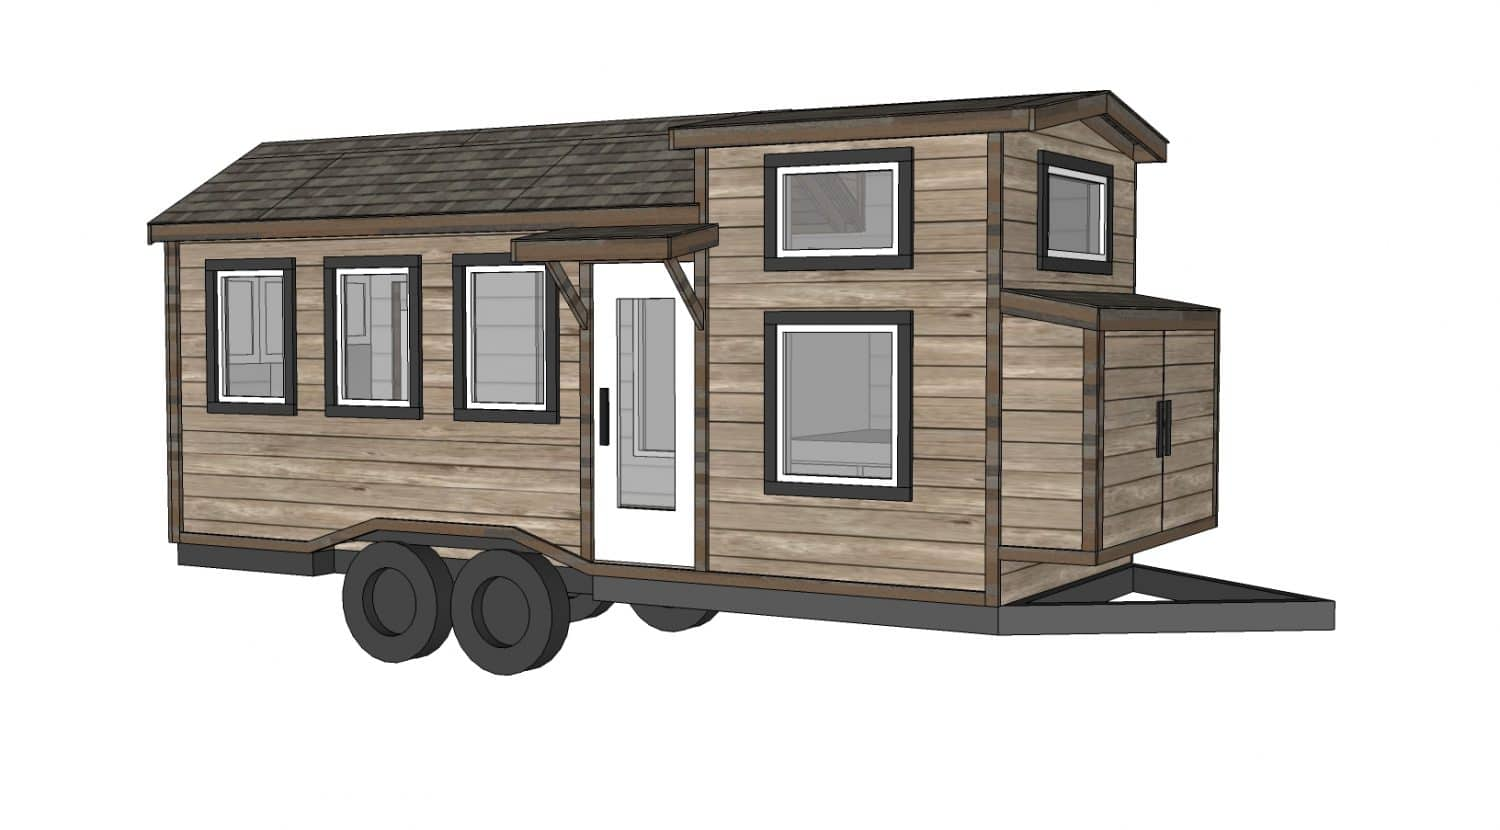 Construire sa propre tiny house plans gratuits et for Small house layout design